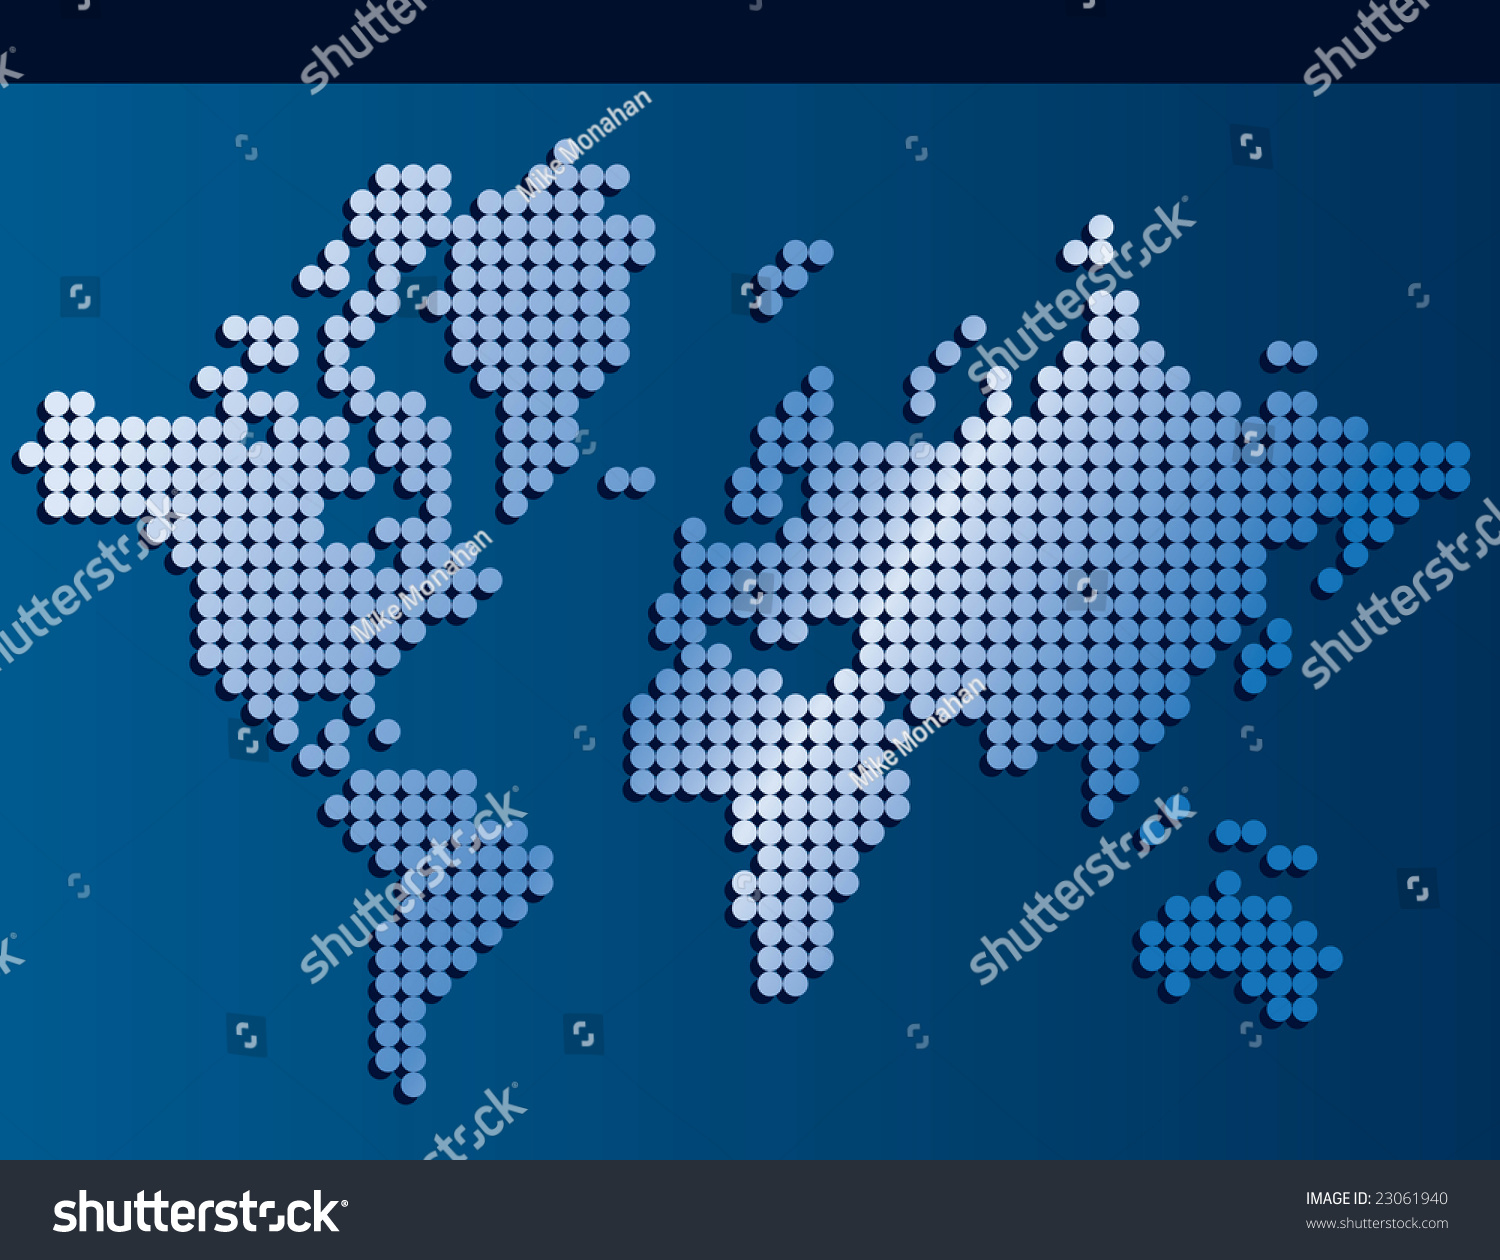 World map made dots banner background stock illustration 23061940 world map made of dots with banner background space for text gumiabroncs Choice Image